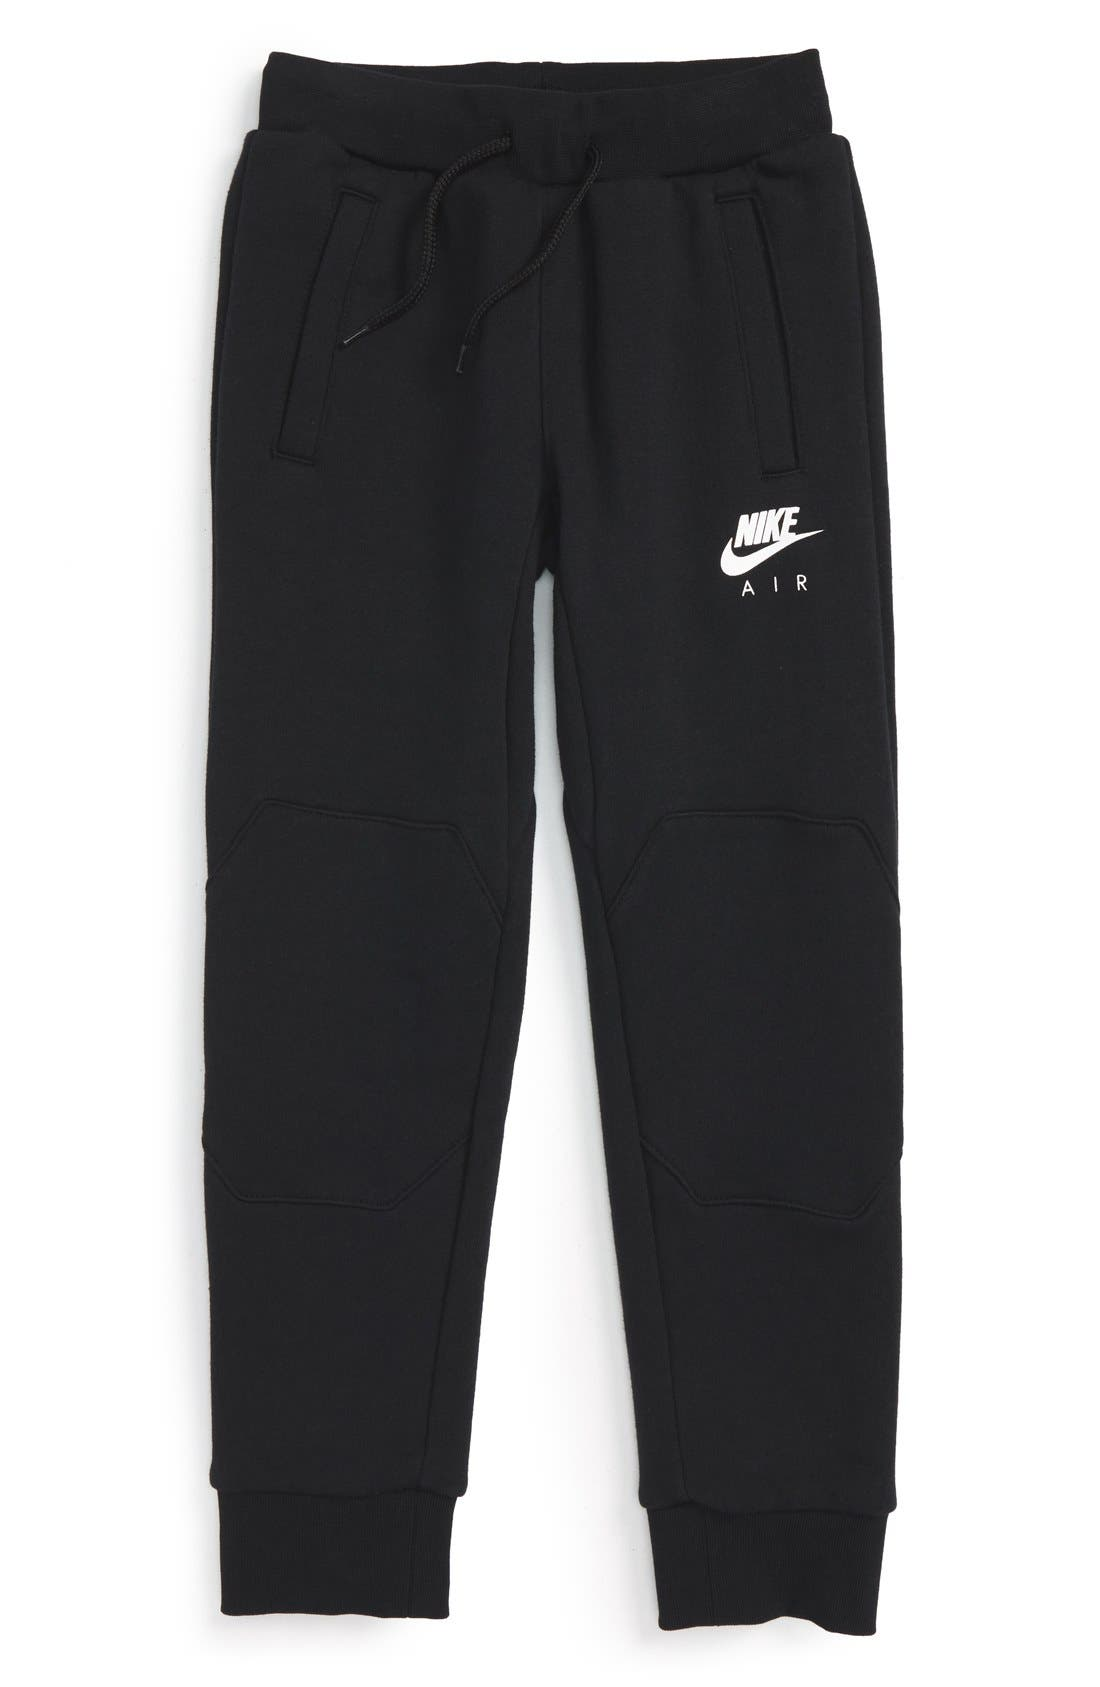 In August Nike introduced their brand new clothing collection. The Nike Tech pack got re-introduced and the first collection consisted of the new Nike Tech efwaidi.ga have succeeded with developing a fleece material, which optimizes the fit and functionality.